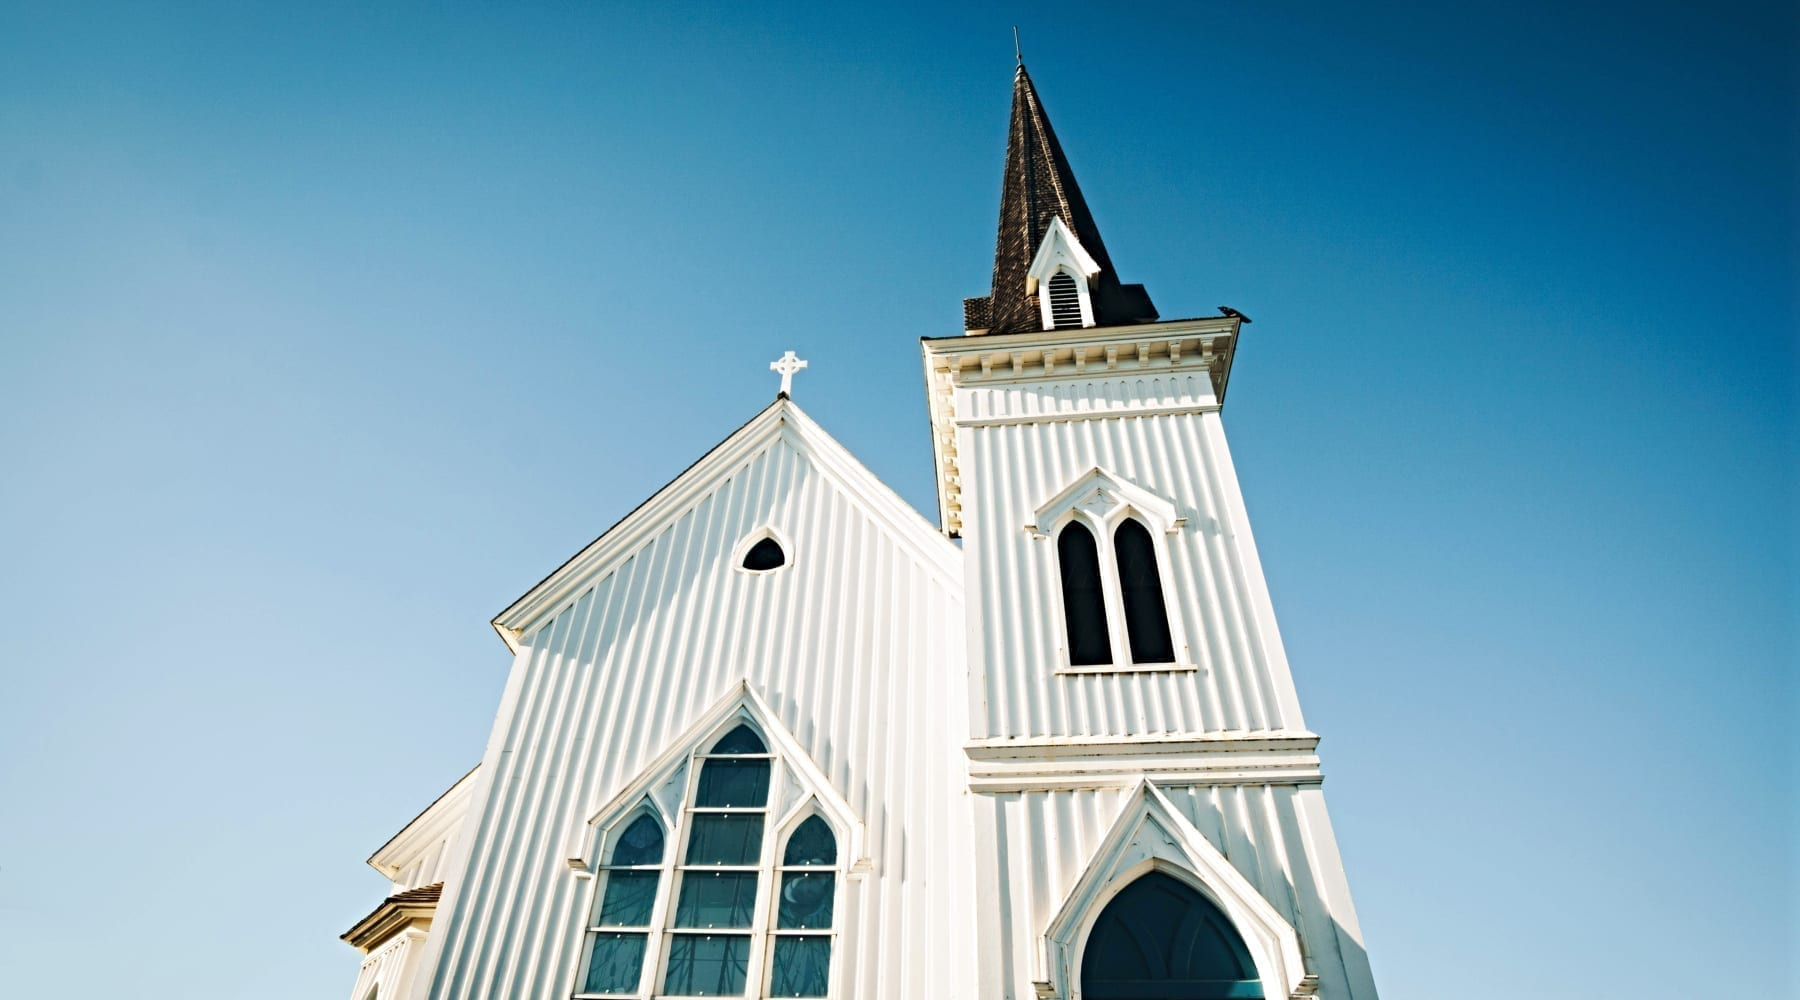 6 Questions to Assess Your Church's Readiness for Change